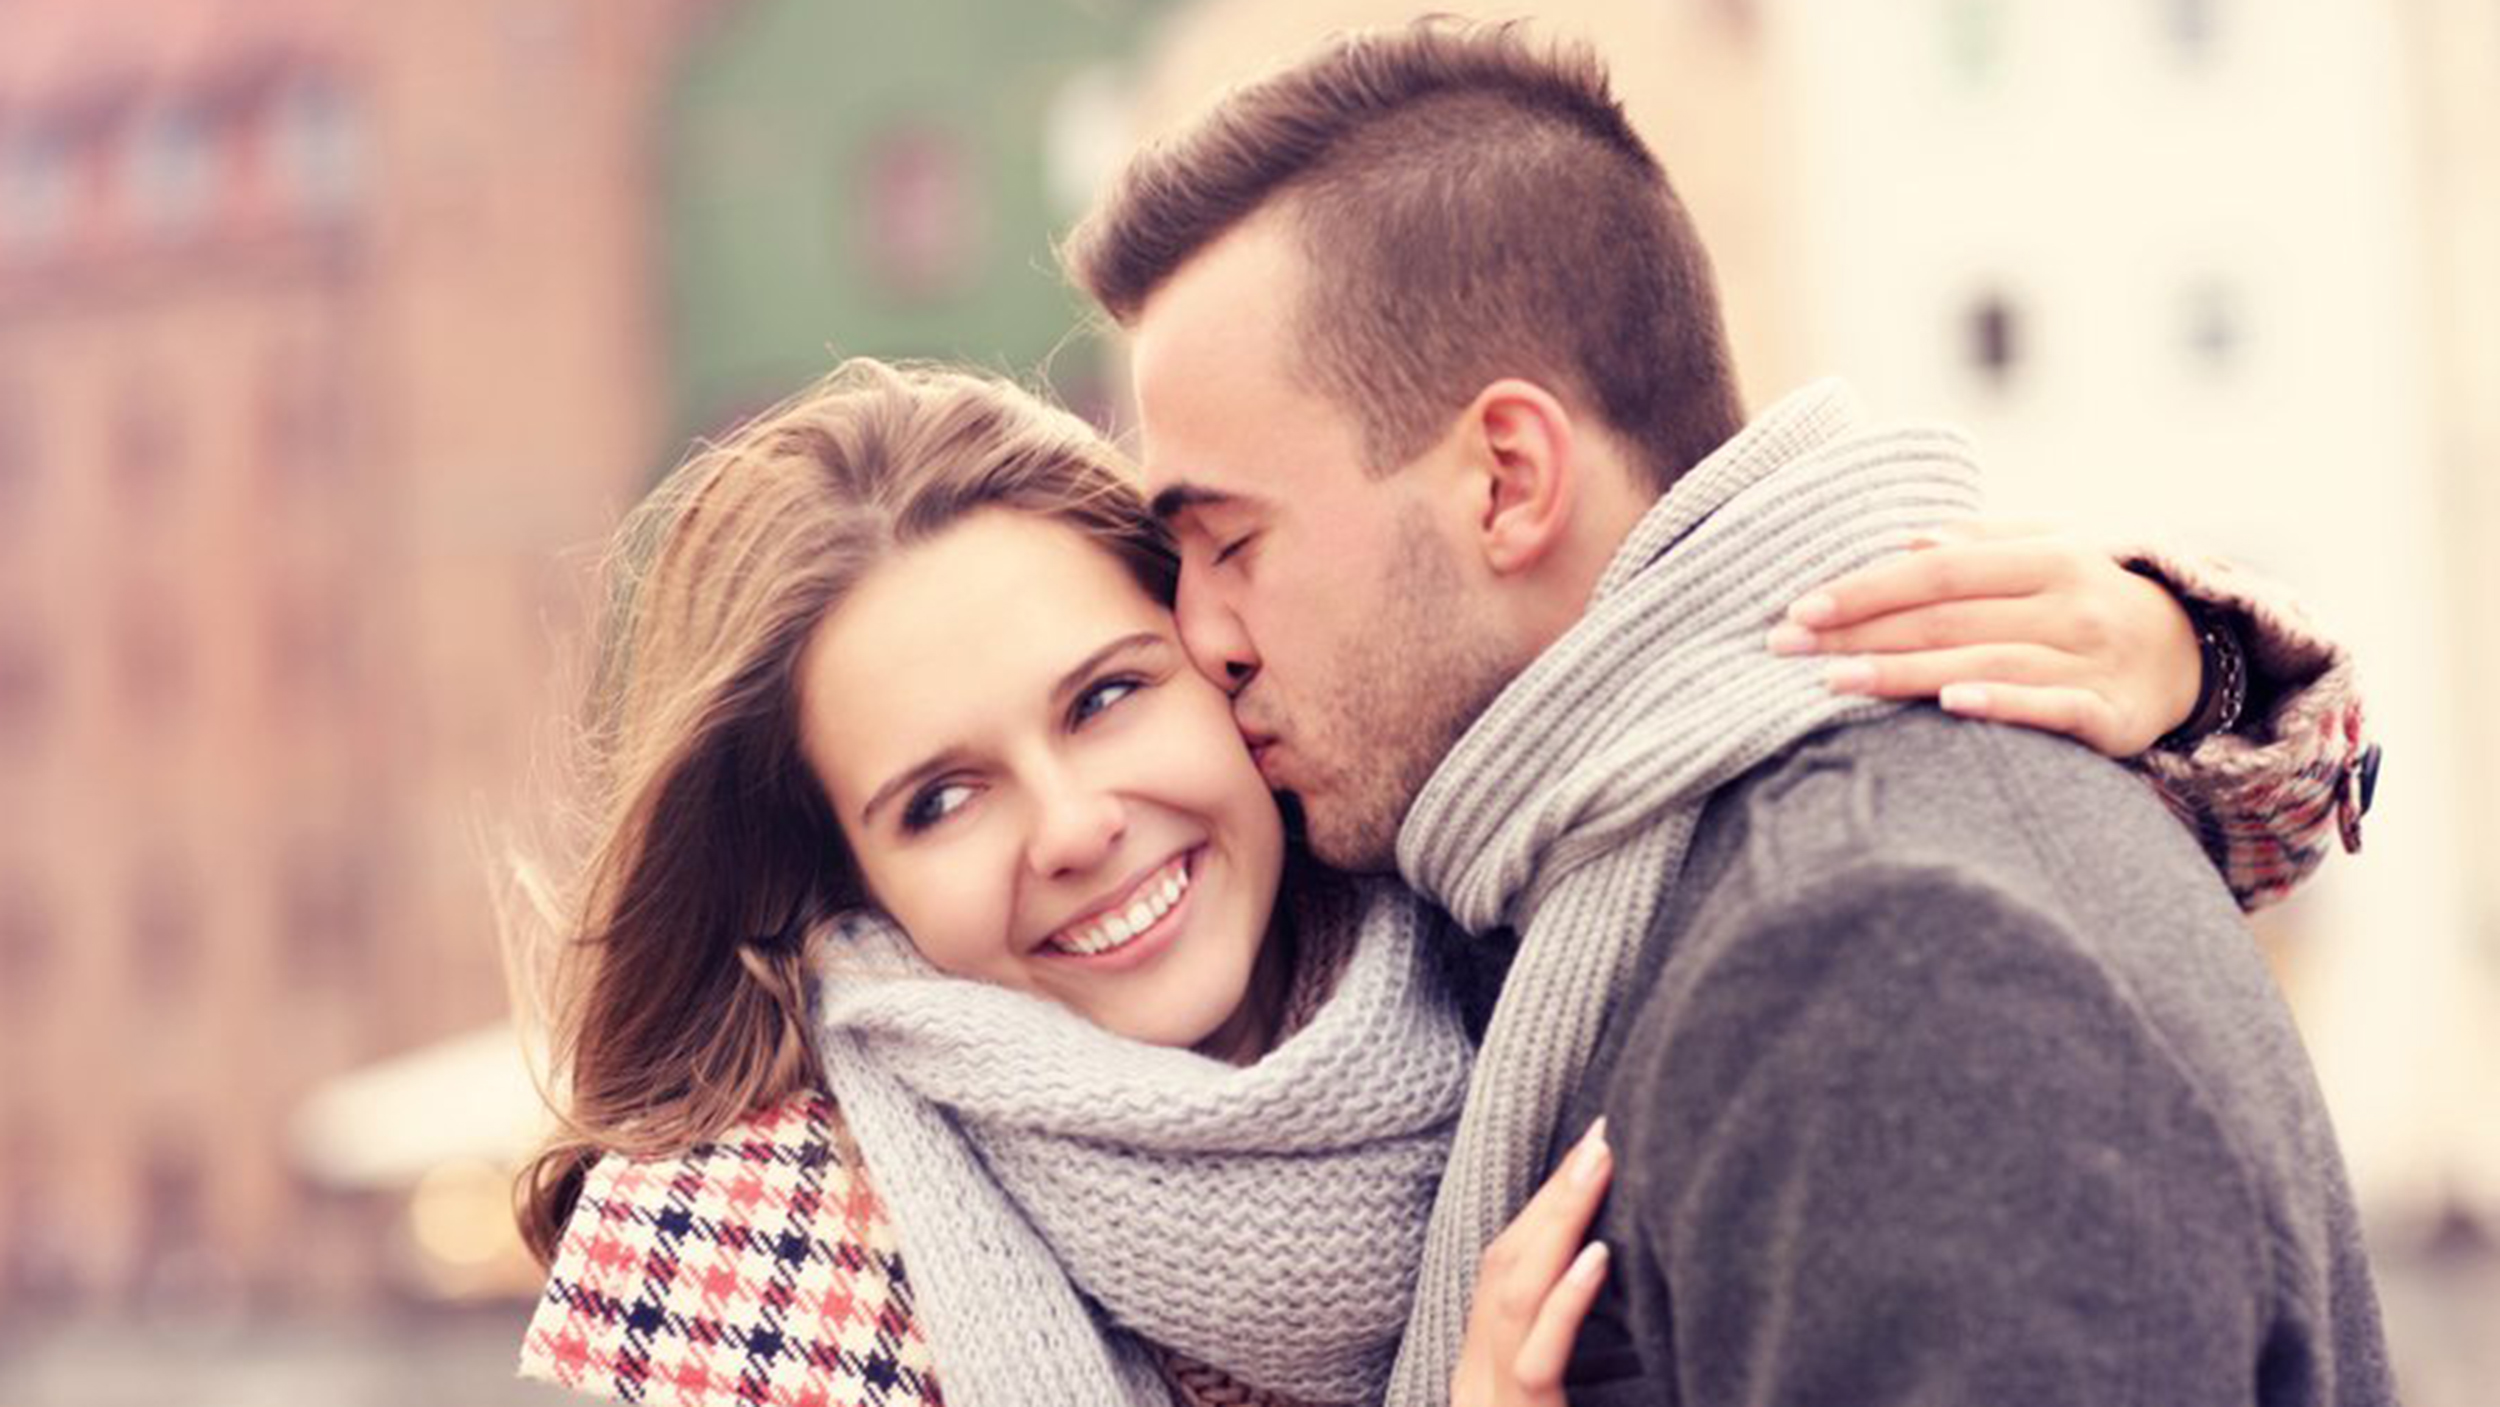 Could your relationship survive 'The Marriage Test'? Try this ...